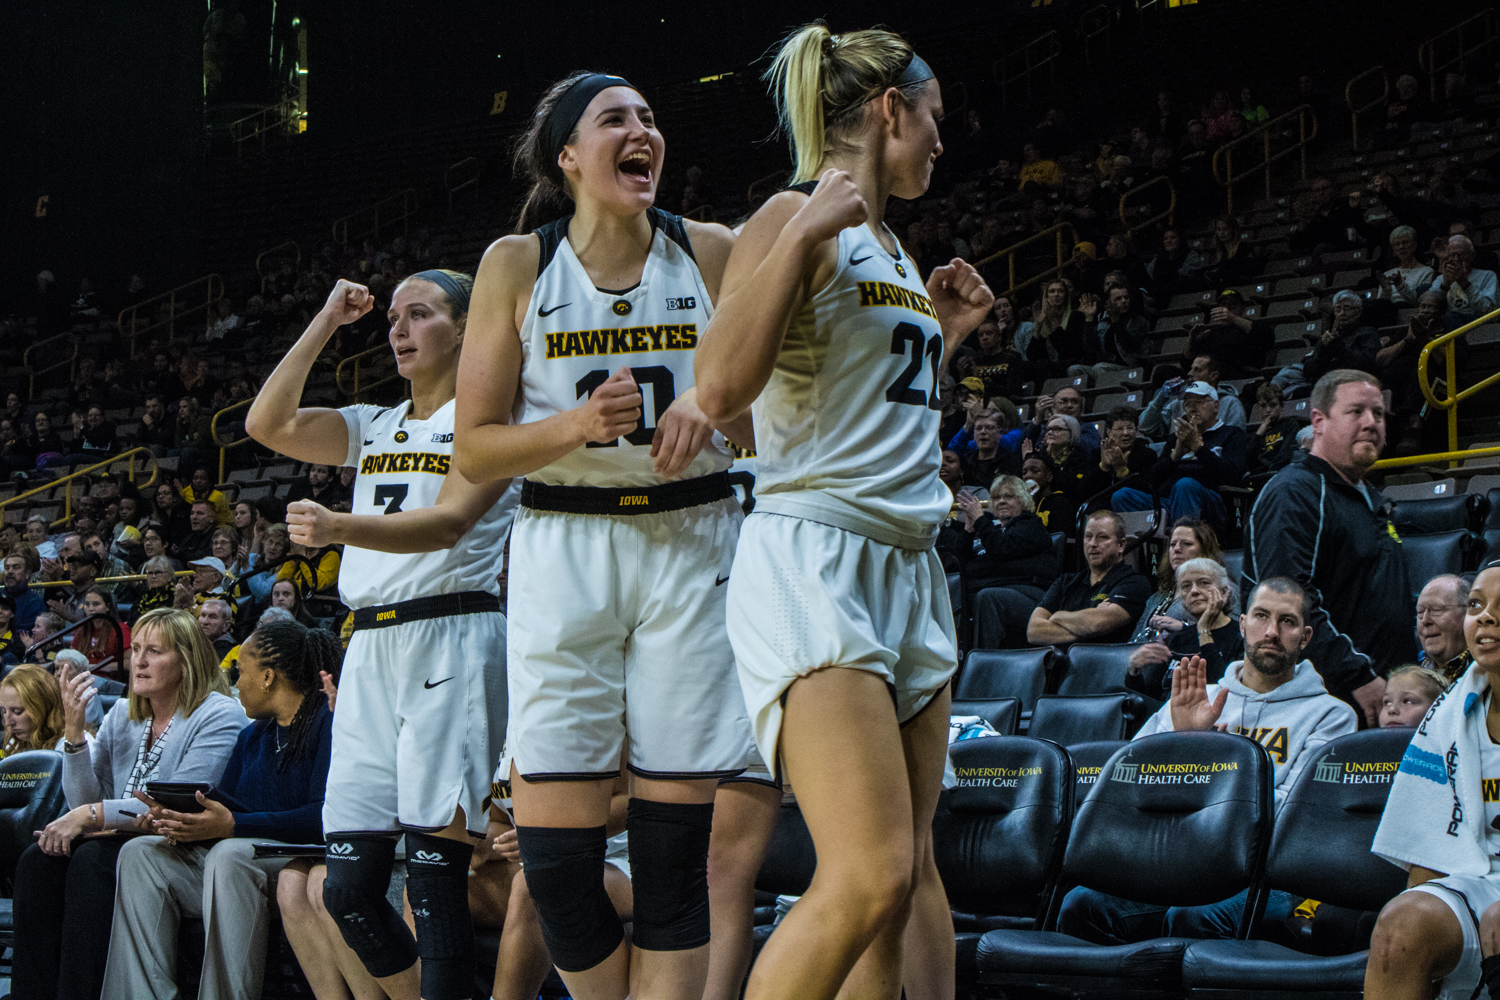 Iowa+players+celebrate+on+the+bench+during+a+women%27s+basketball+game+between+Iowa+and+North+Carolina+Central+at+Carver-Hawkeye+Arena+on+Saturday%2C+Nov.+17%2C+2018.+The+Hawkeyes+devastated+the+visiting+Eagles%2C+106-39.+